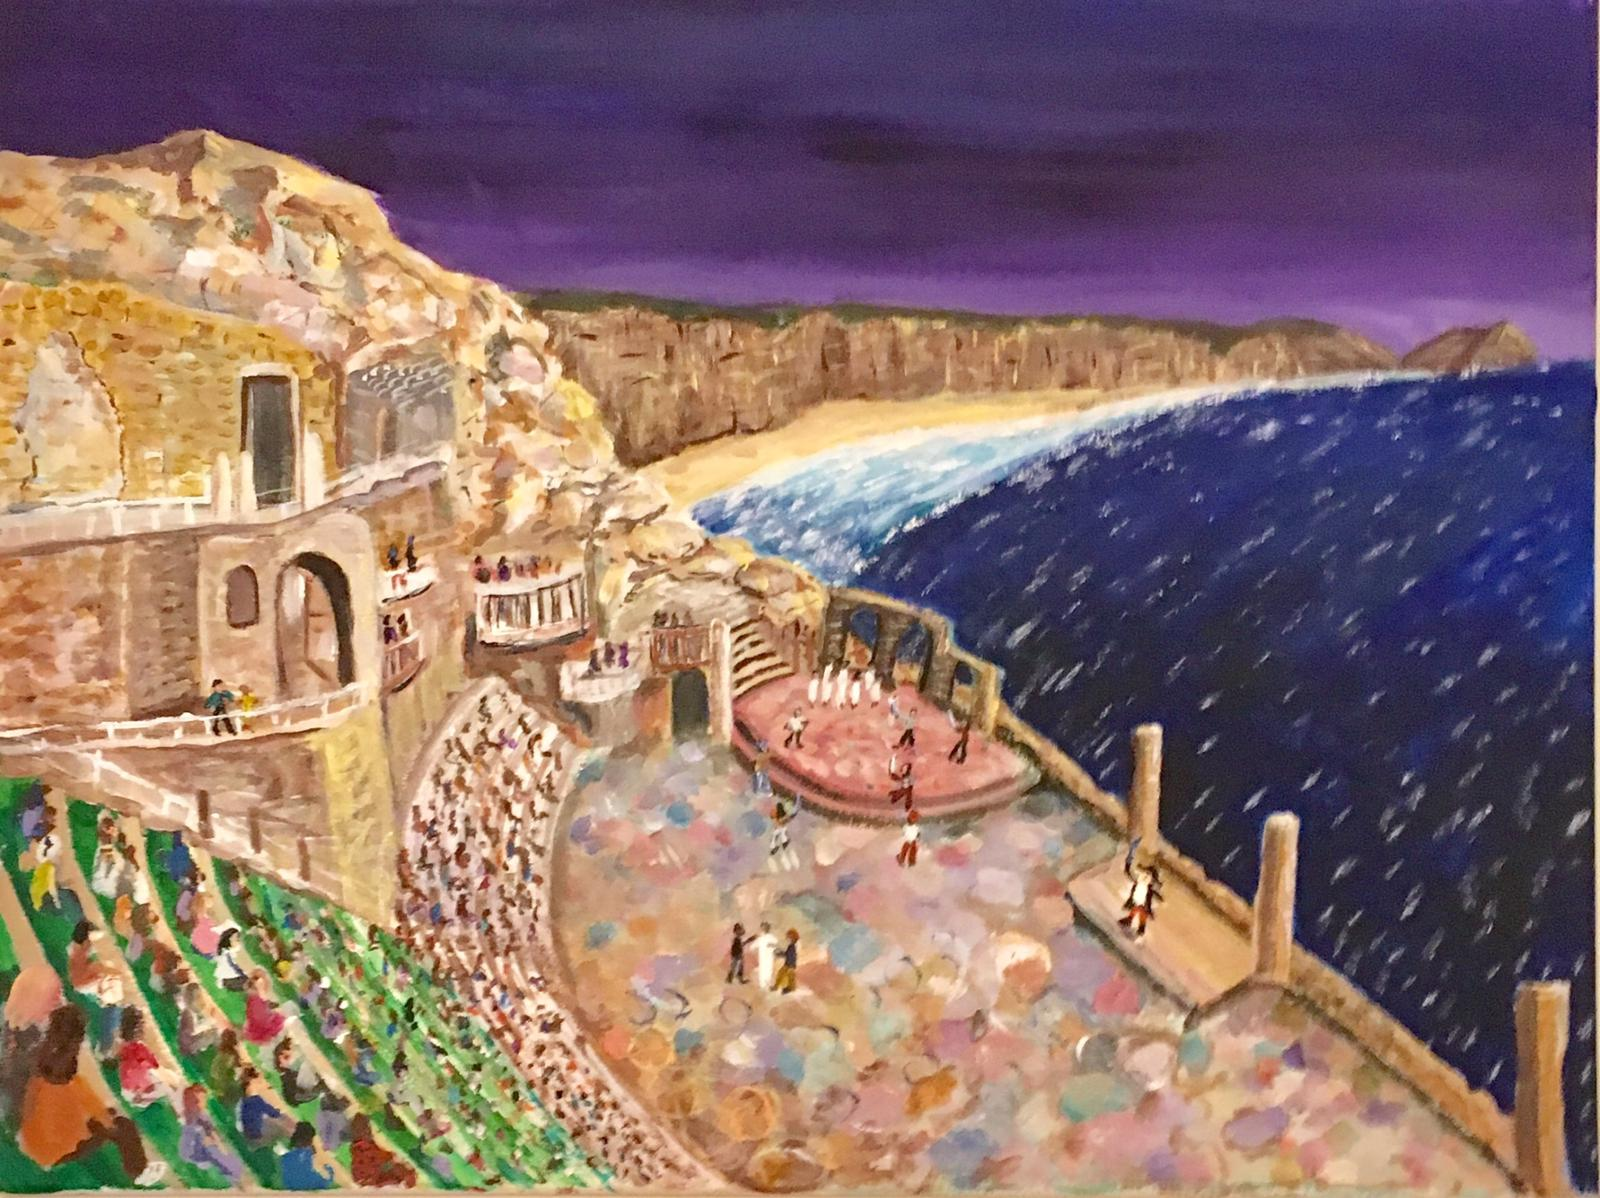 Painting of Pirates of Penzance play at Minack Theatre